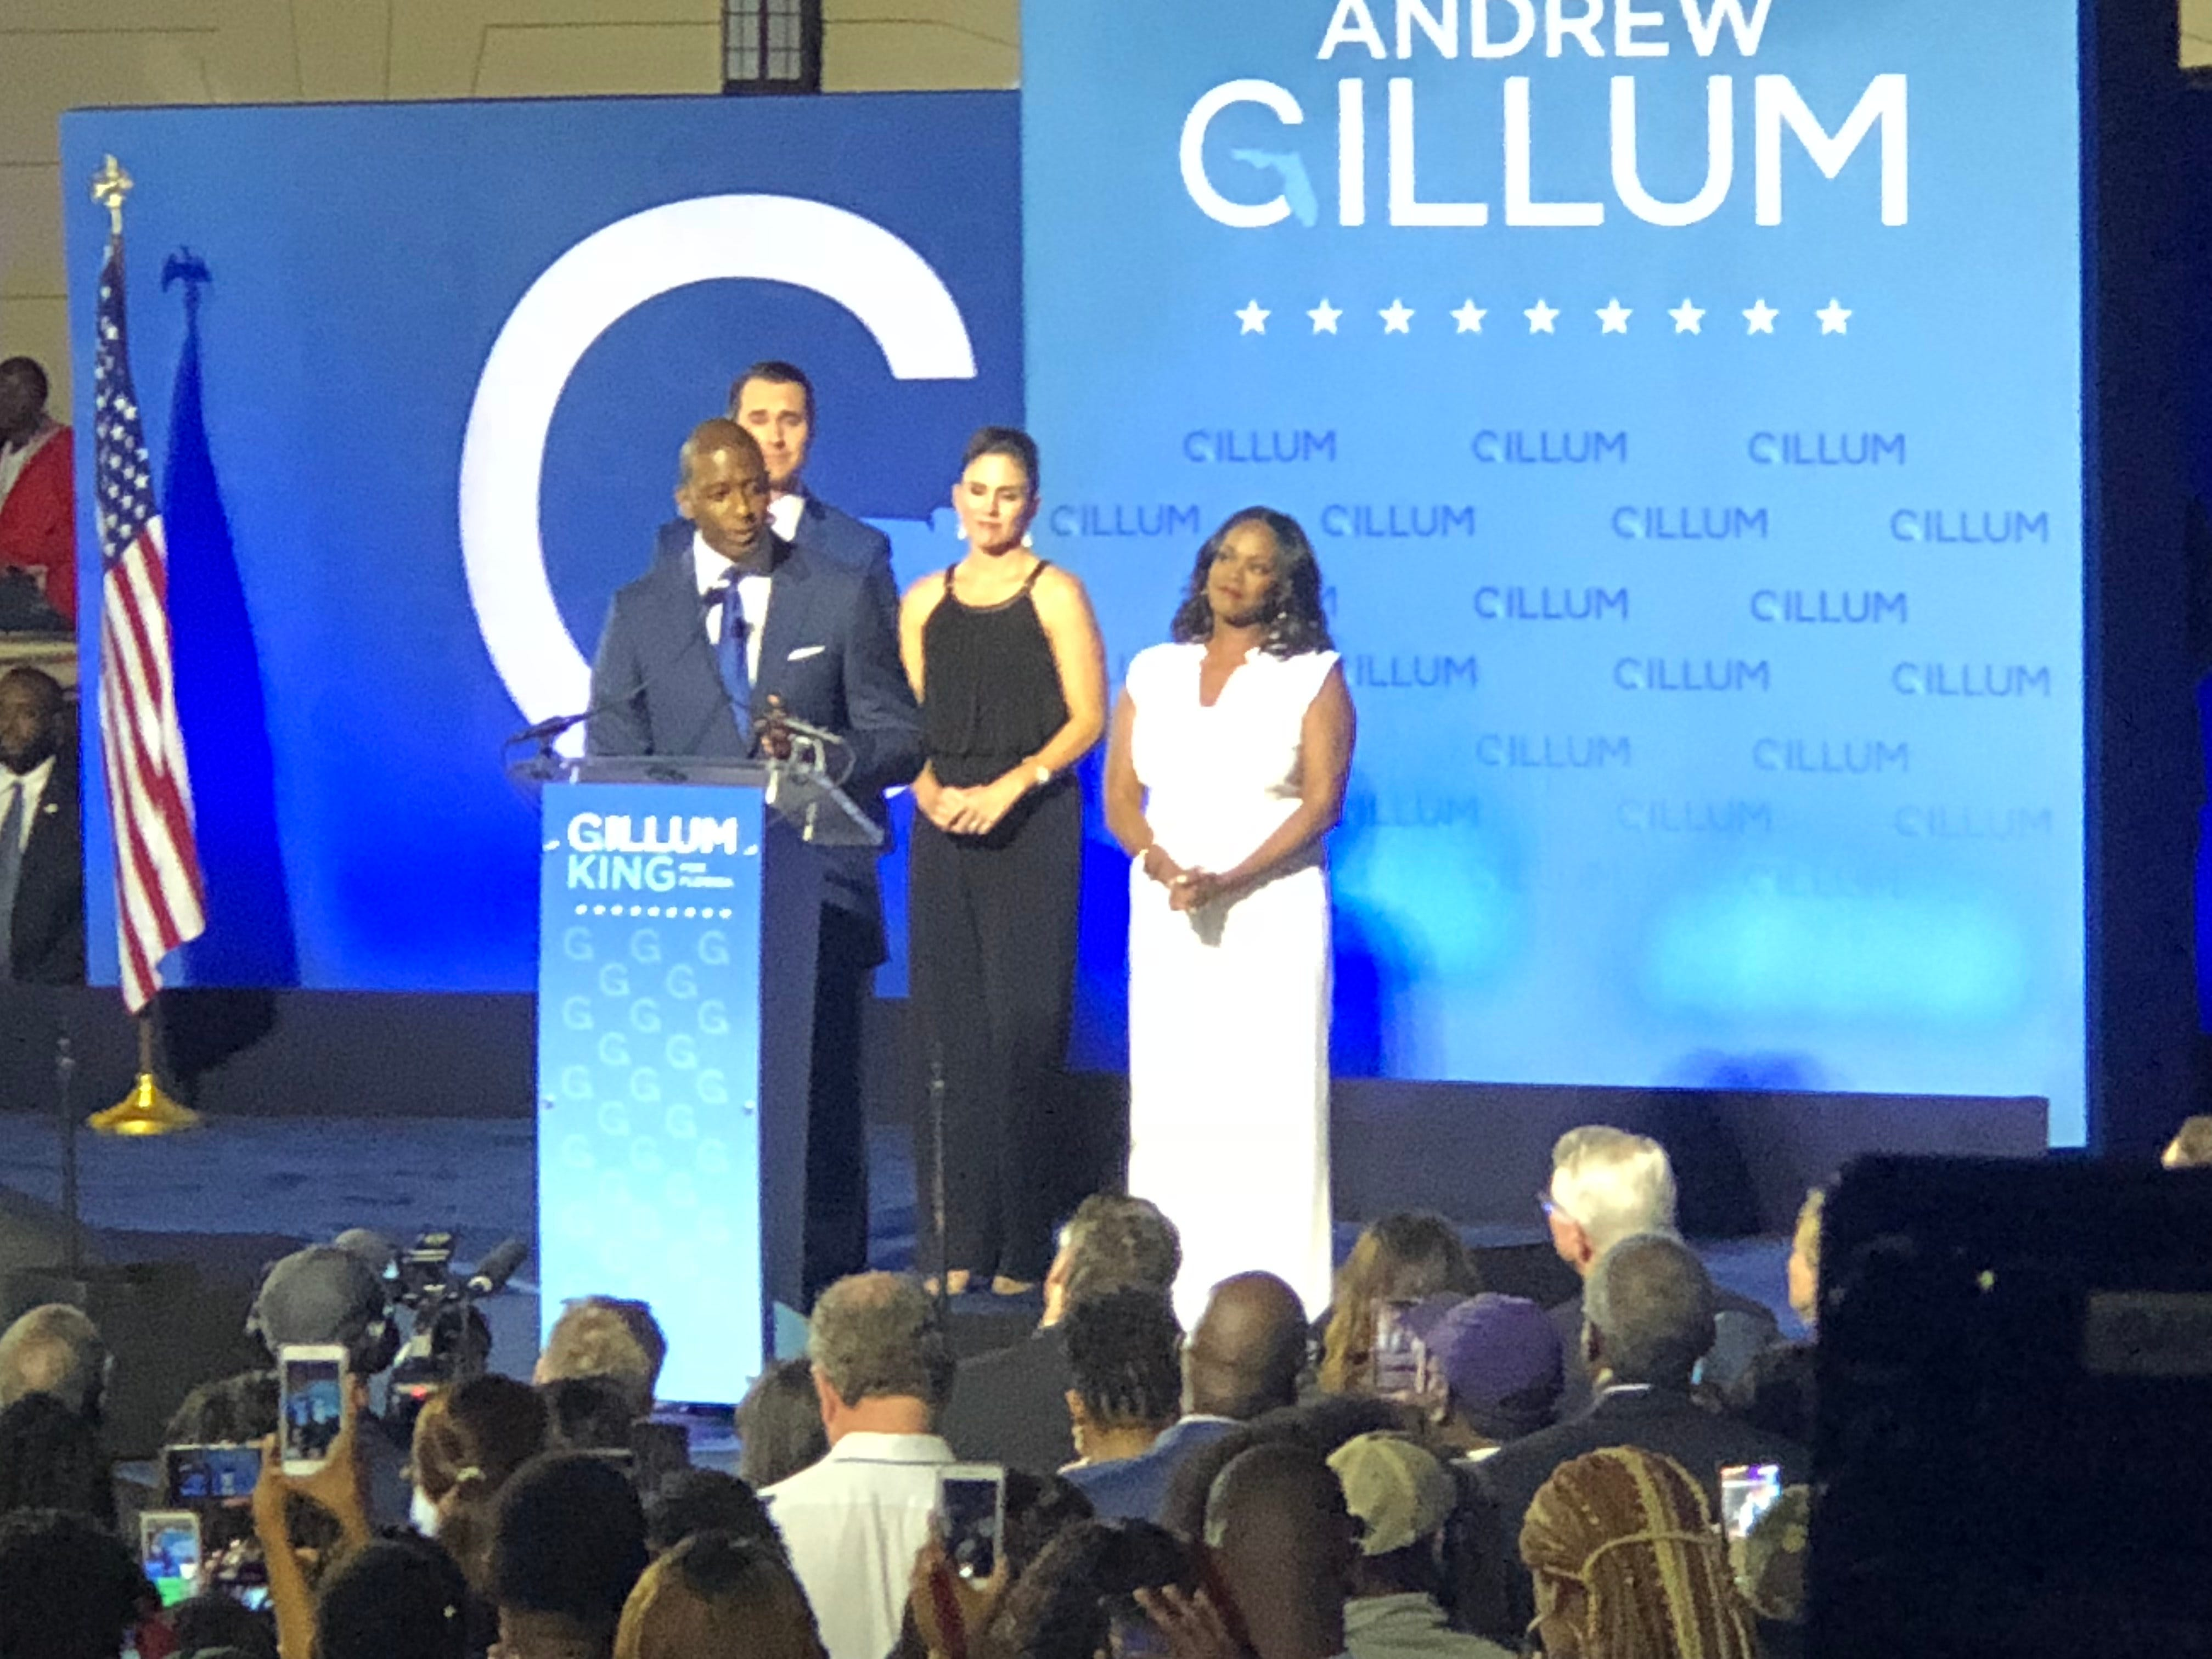 Andrew Gillum gives tearful concession speech after close gubernatorial race